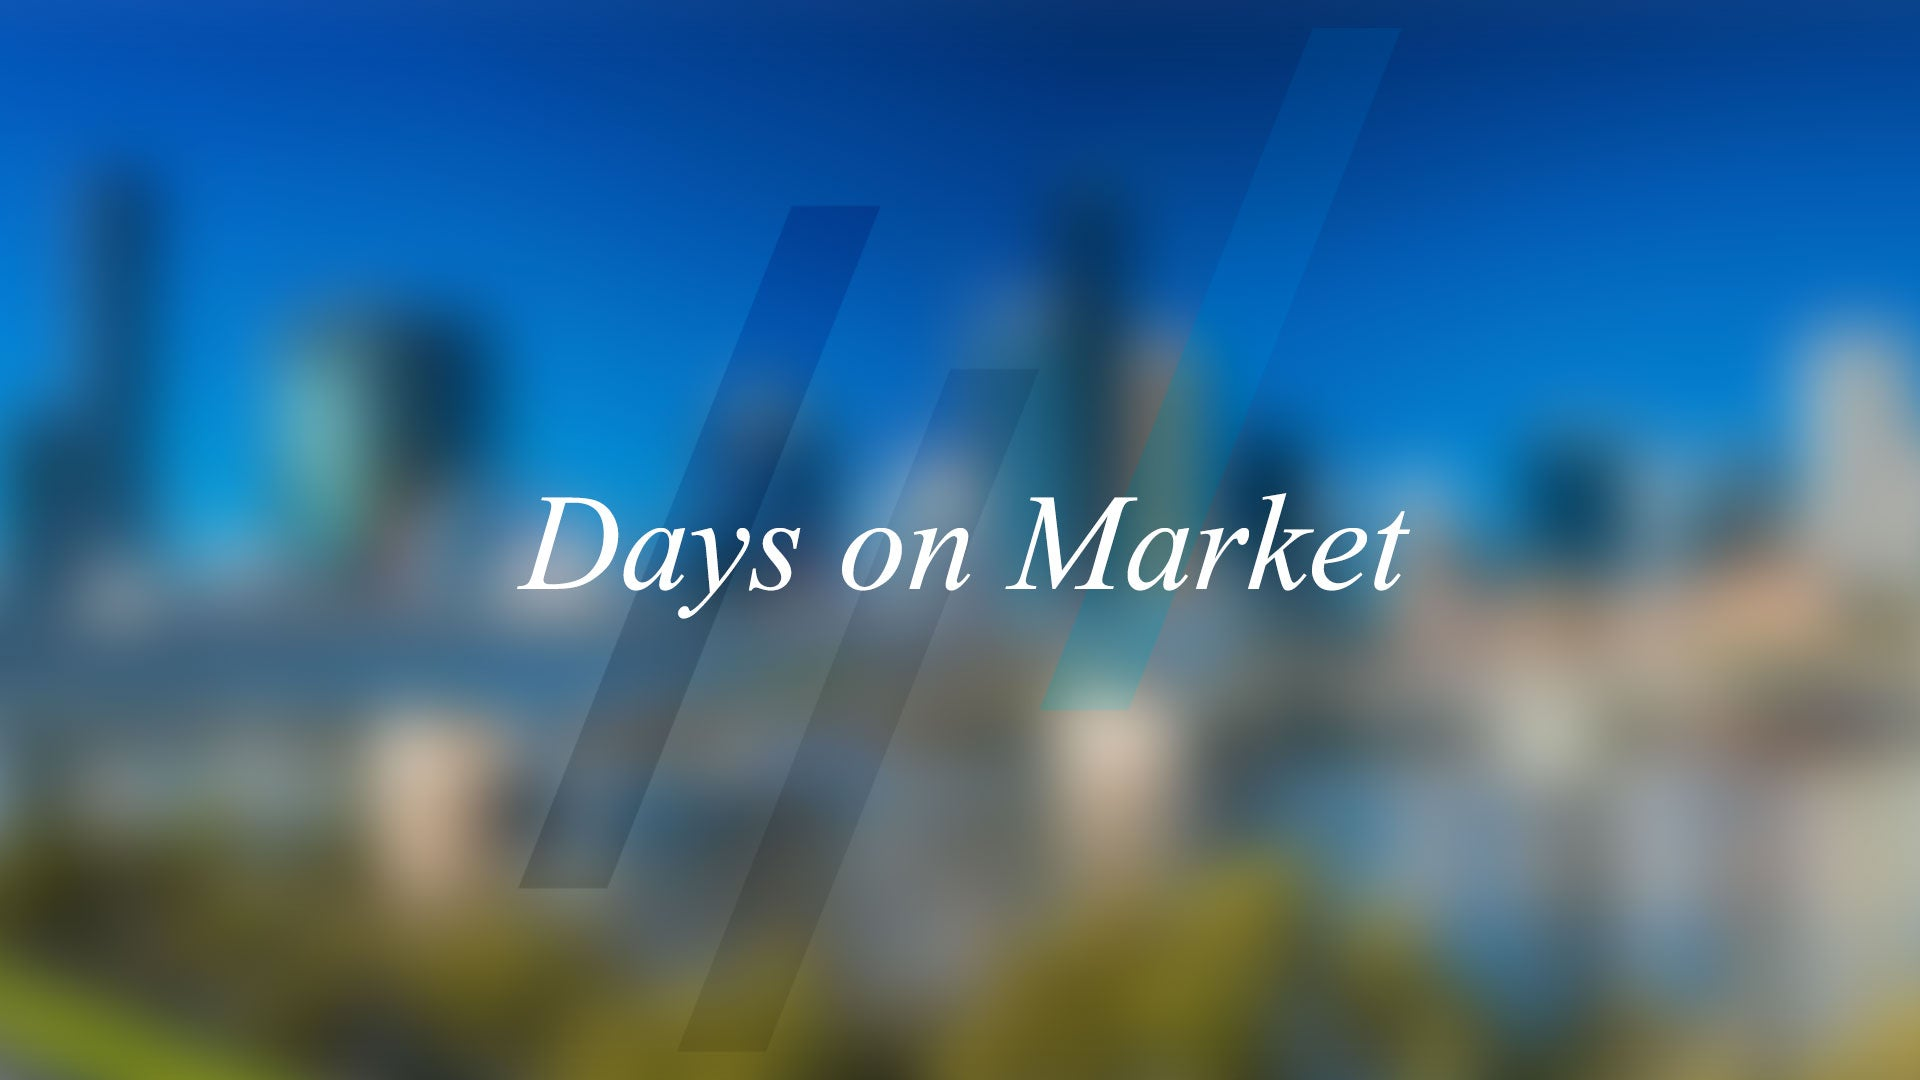 Days on Market - Why is this relevant?